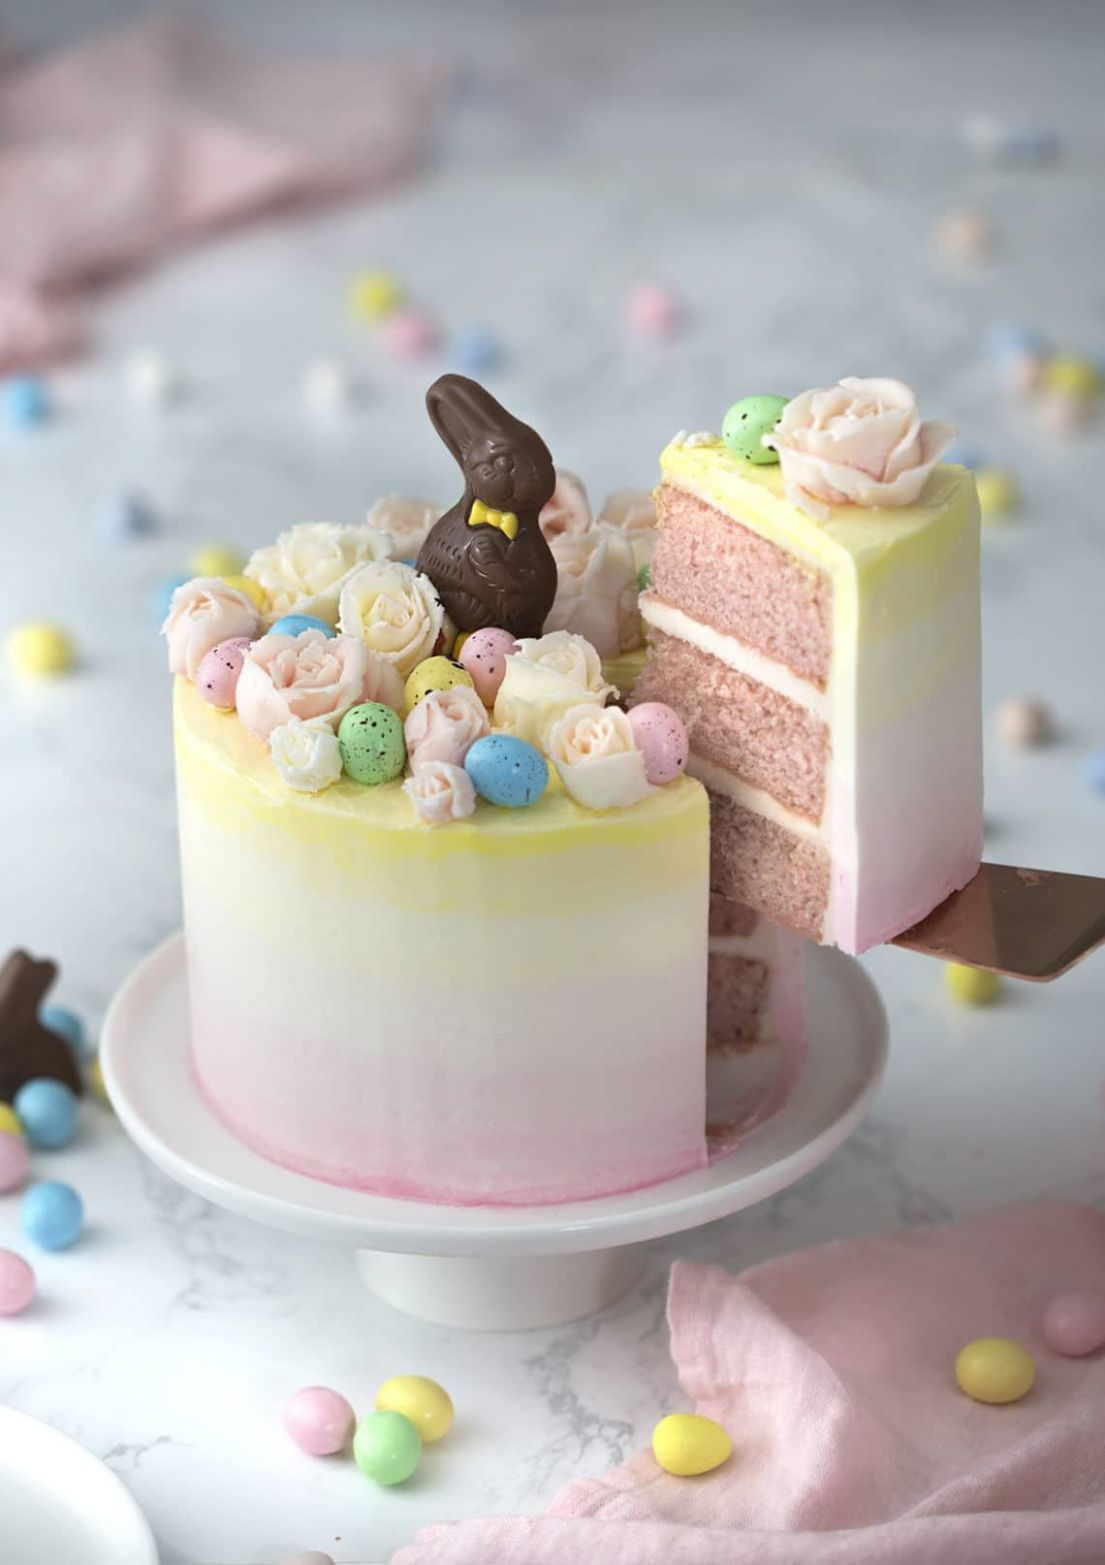 9 Easy Easter Cake Ideas - Easy Easter Cake and Dessert Recipes - Dessert Recipes For Easter